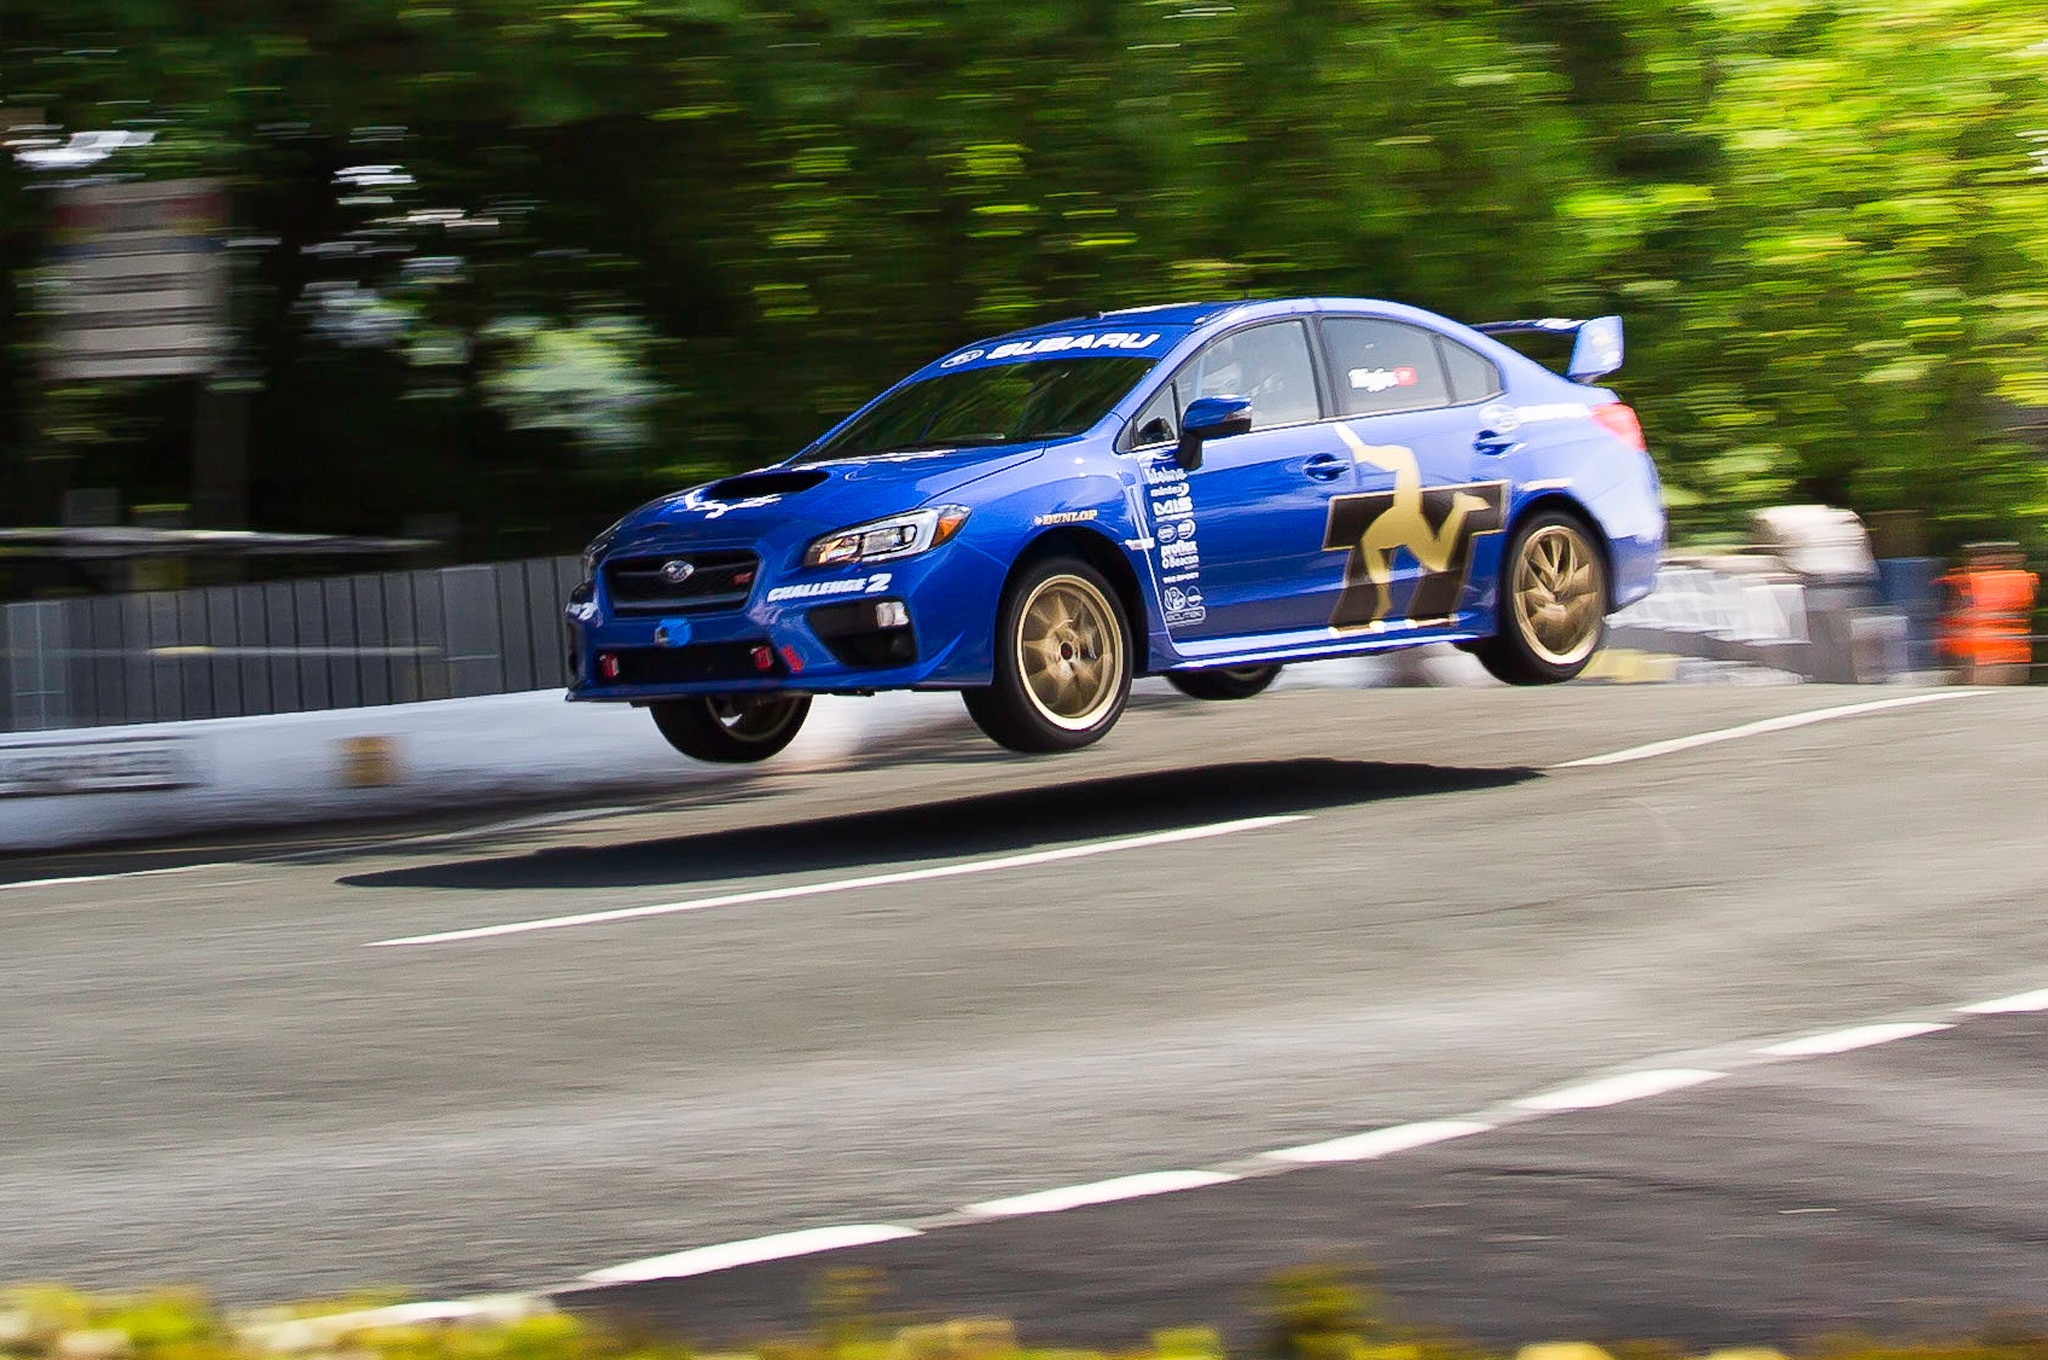 2015 Subaru WRX STI At Isle Of Man Jump Closer View1